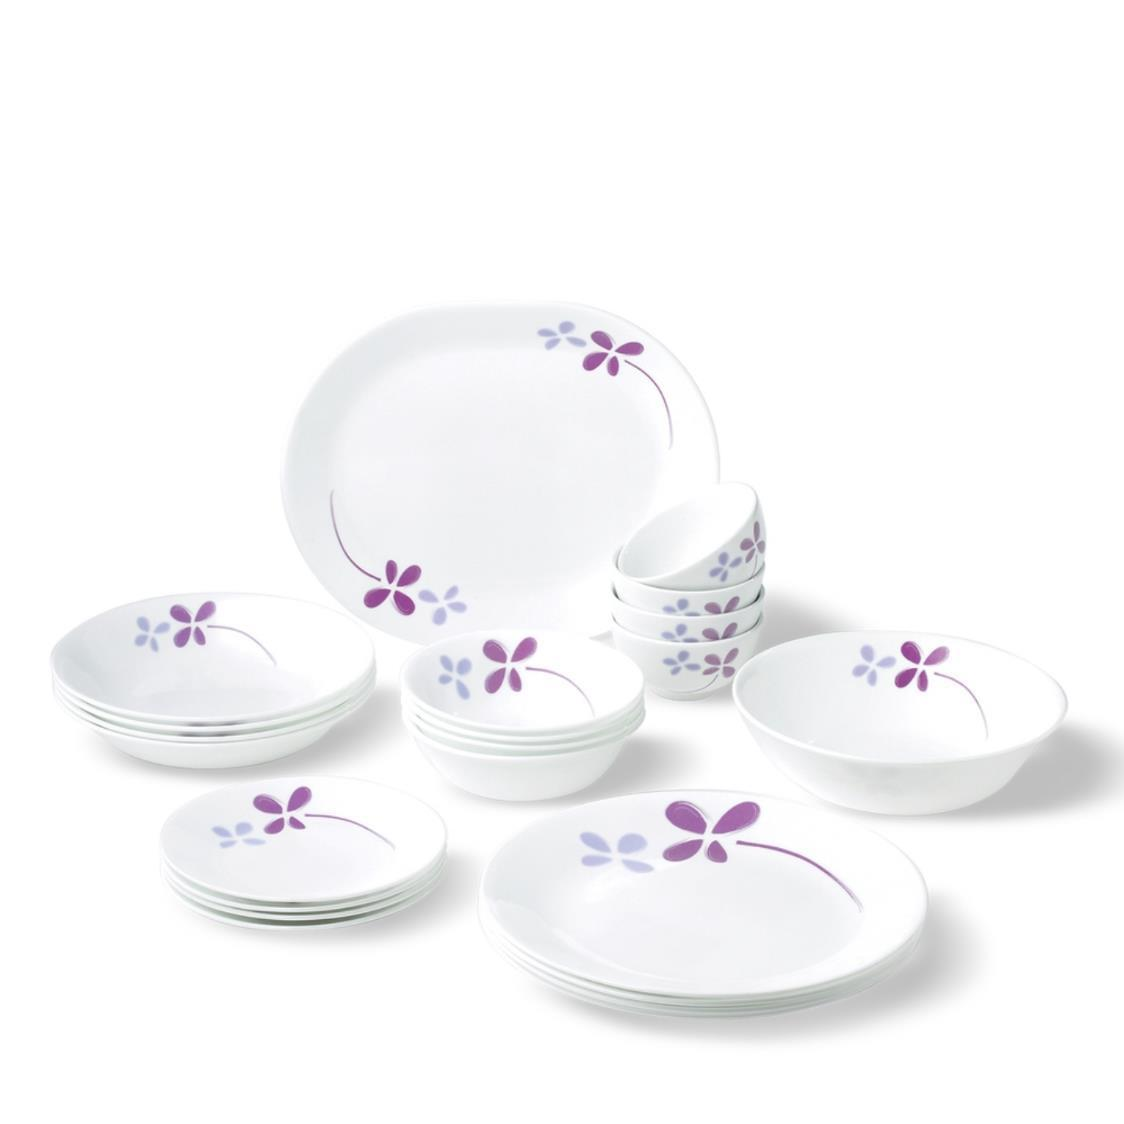 26pc Dinner Warm Pansies Set